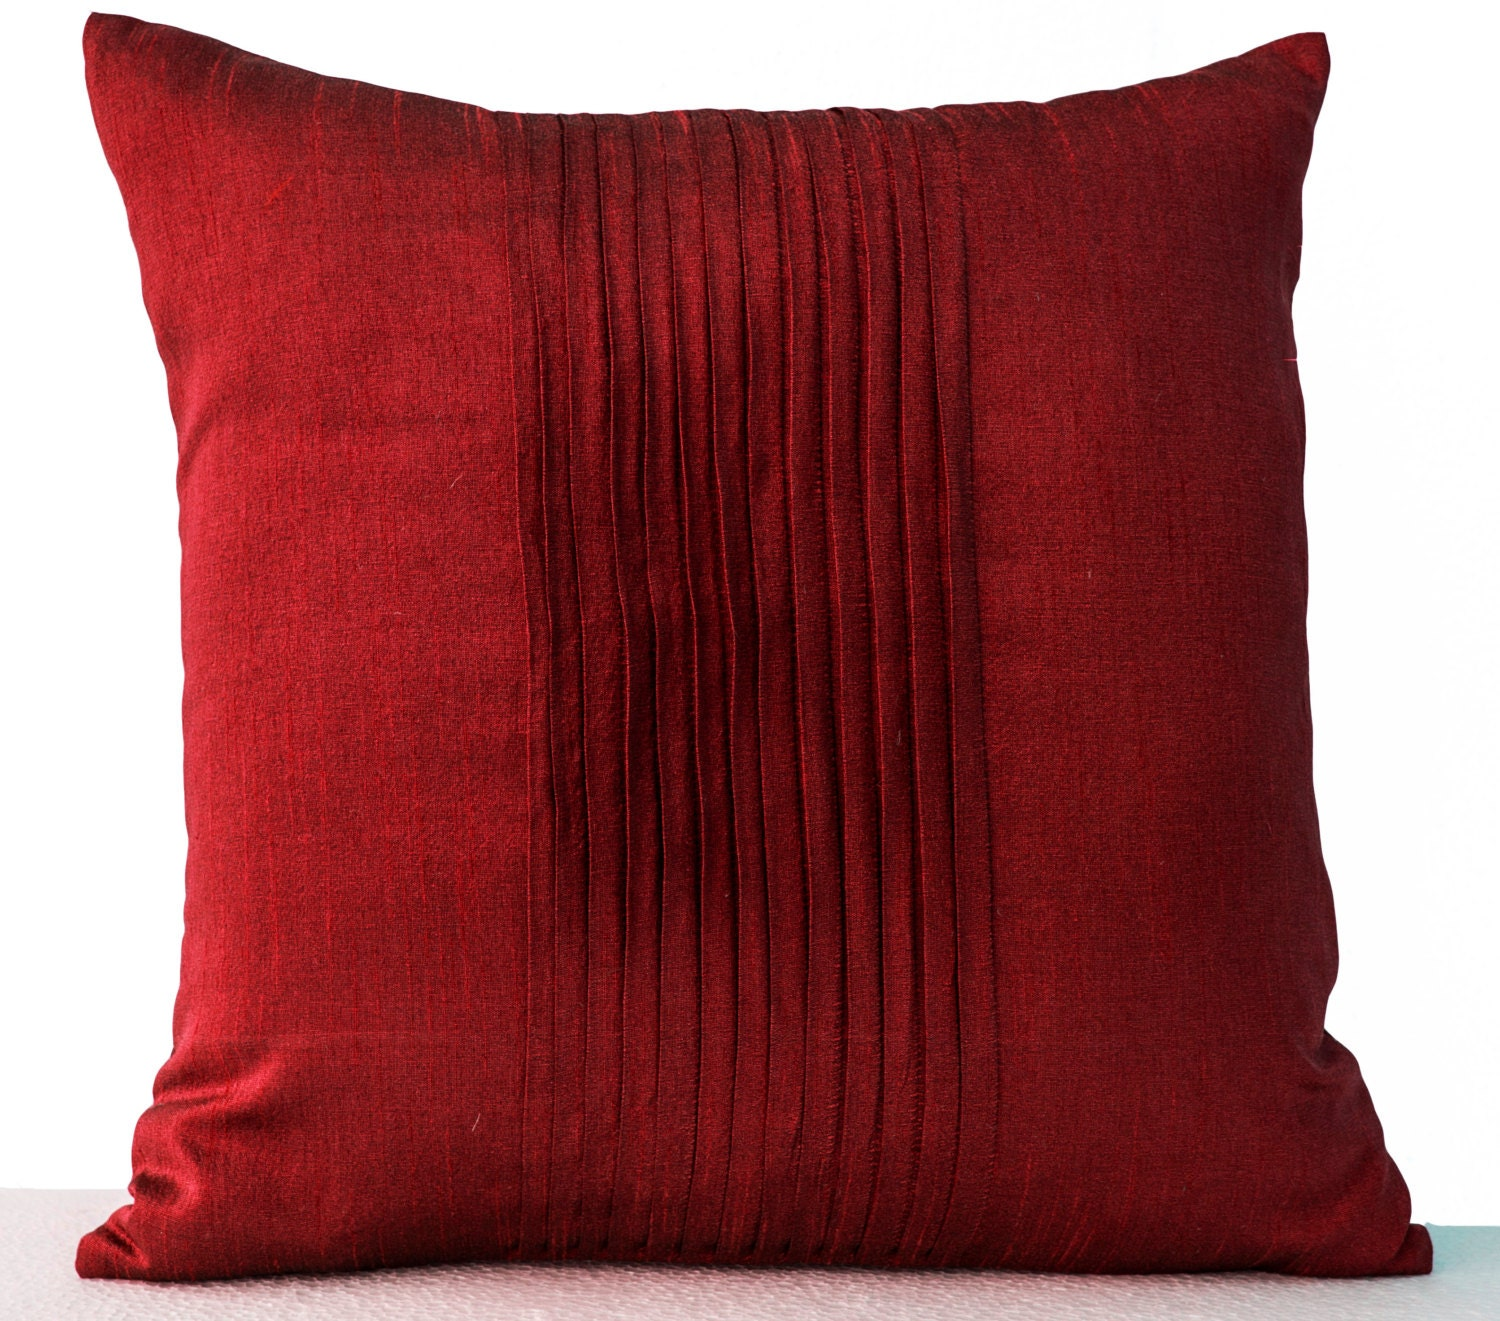 Throw pillows in red art silk Attractive cushion in rippled